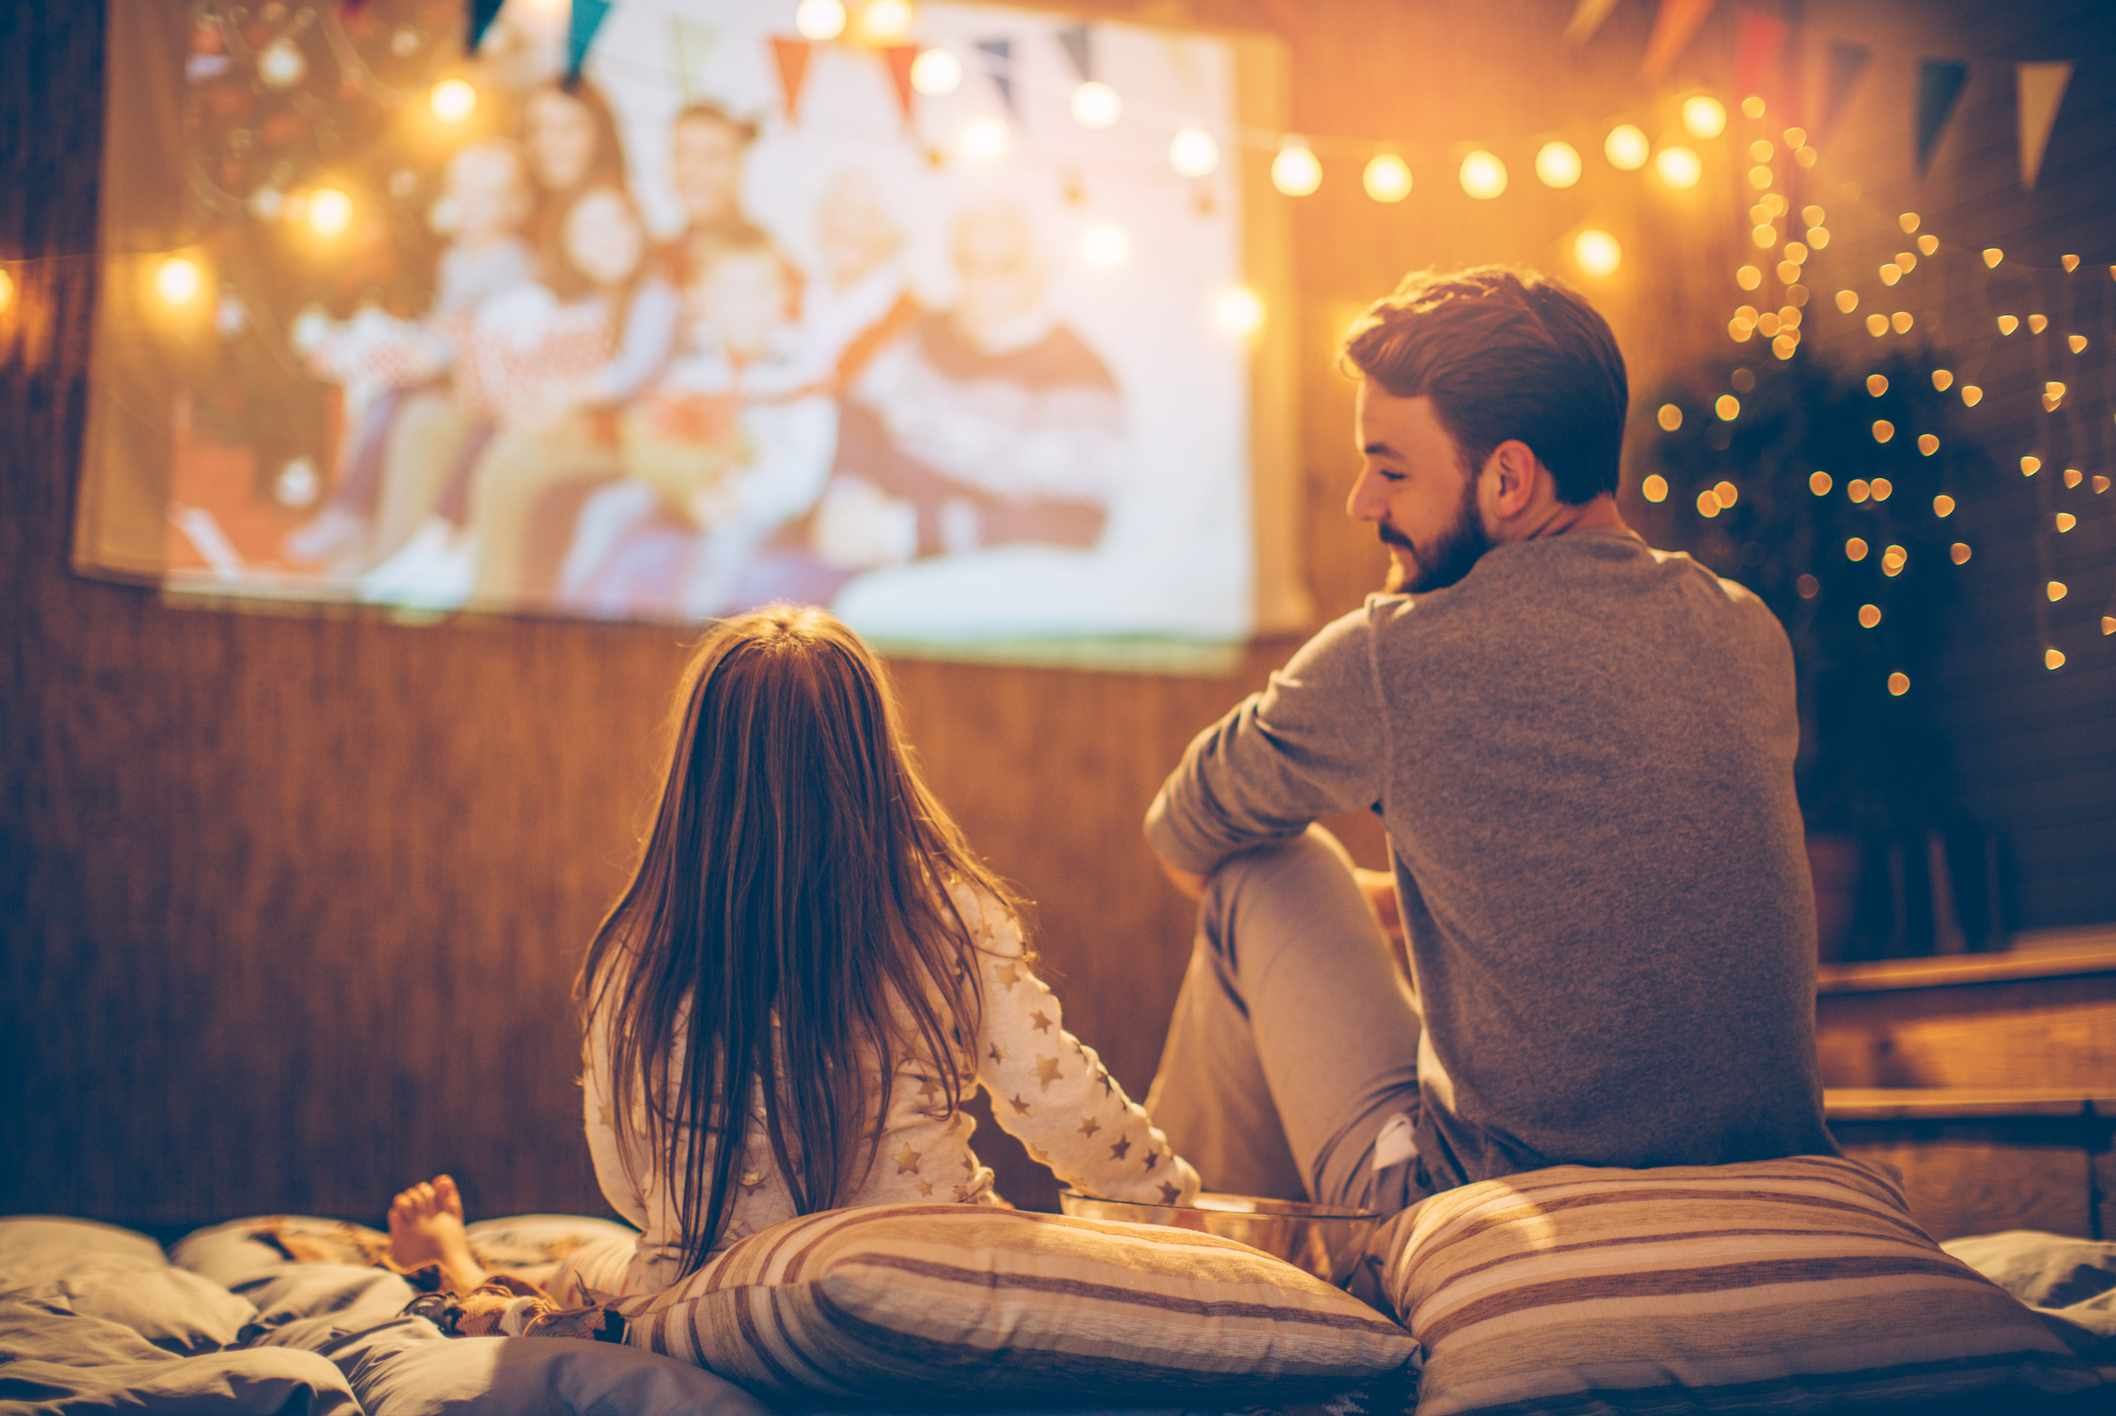 Father looking at daughter watching movie outdoors